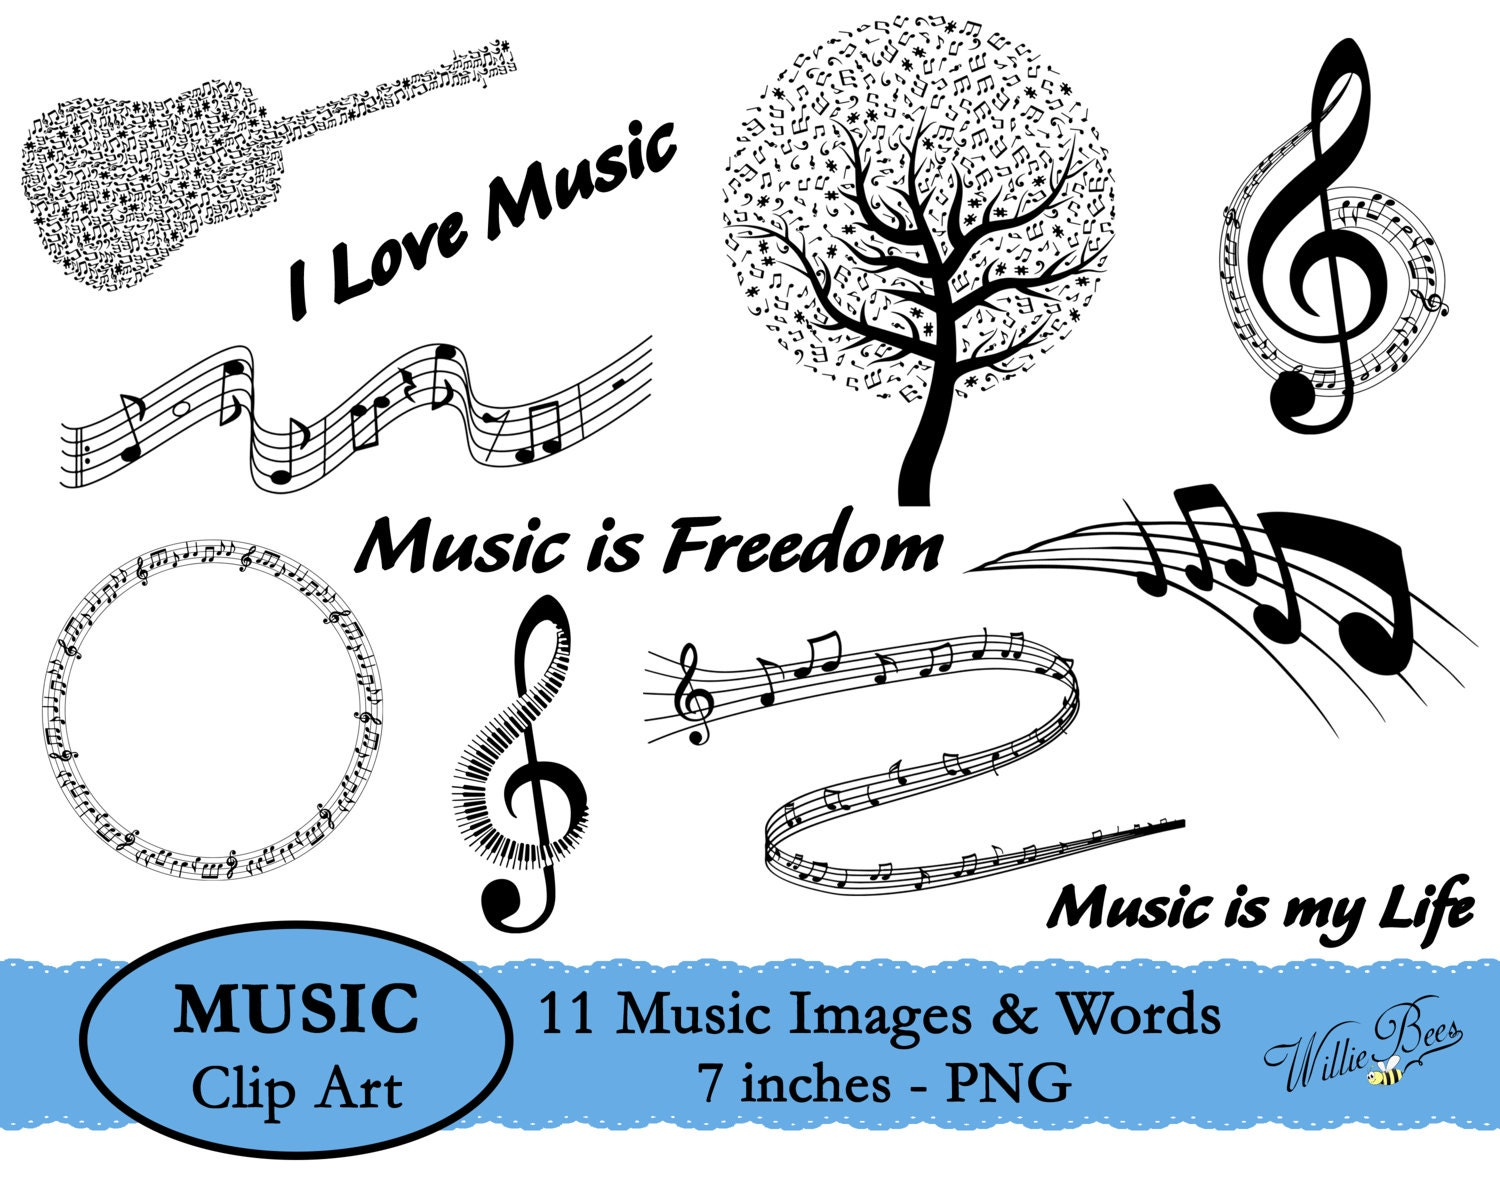 Music images musical music image guitar music symbols zoom biocorpaavc Image collections